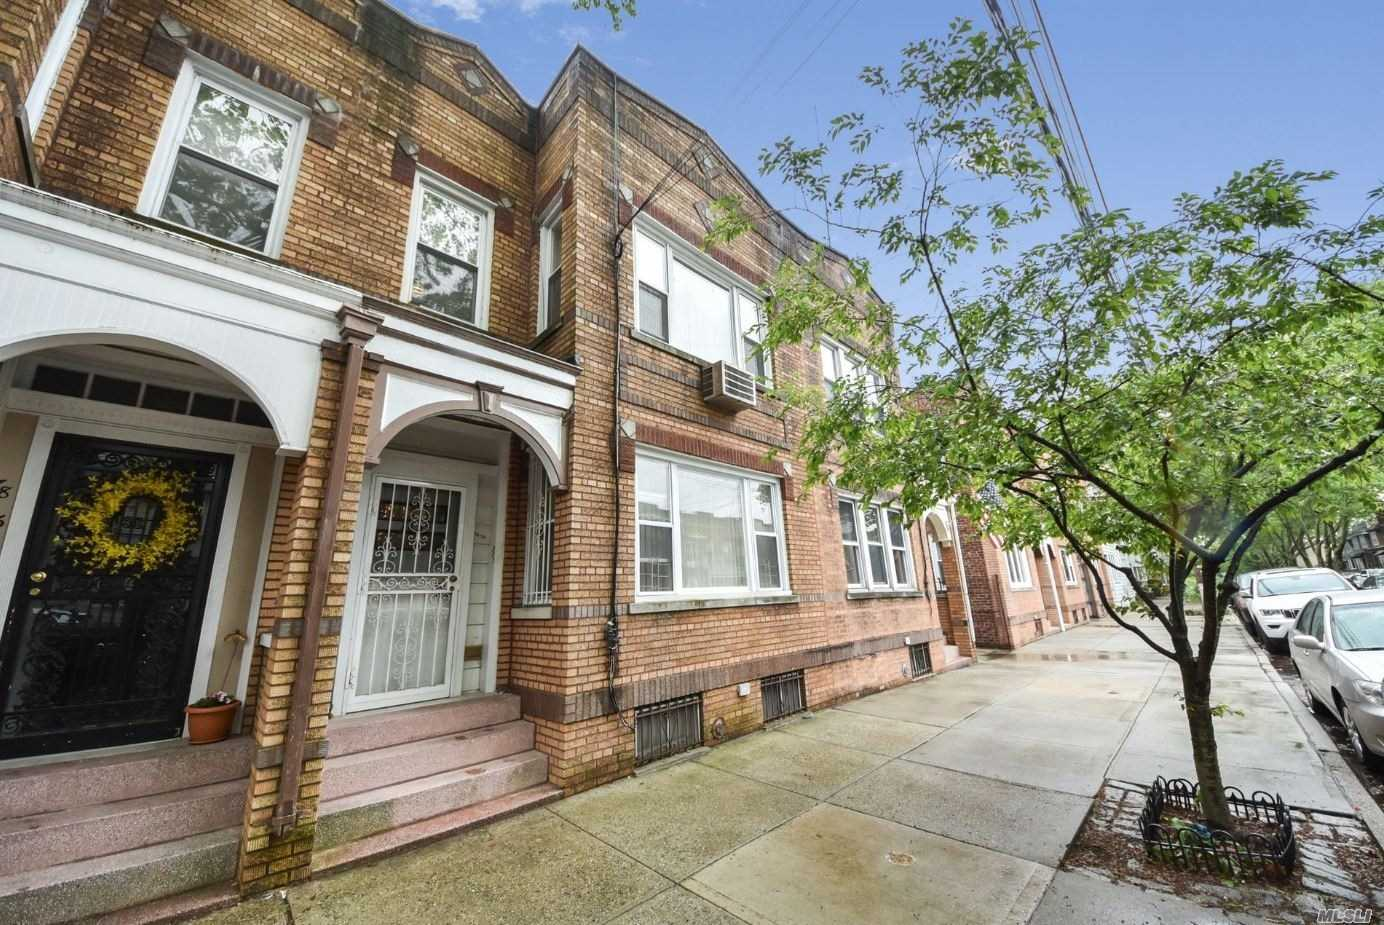 Great 2 Family Brick Home Located In Glendale, 1st Fl Features 5 Rms-Eik, Lr, Fdr, 2 Bdrms 1 Full Bth & Rear Patio. The 2nd Fl Features 6 Rms-Eik, Lr, Fdr, 3 Bdrms 1 Full Bth And Rear Terrace. The Basement Is Finished (Used For Storage), Community Drvwy & 2 Car Garage.